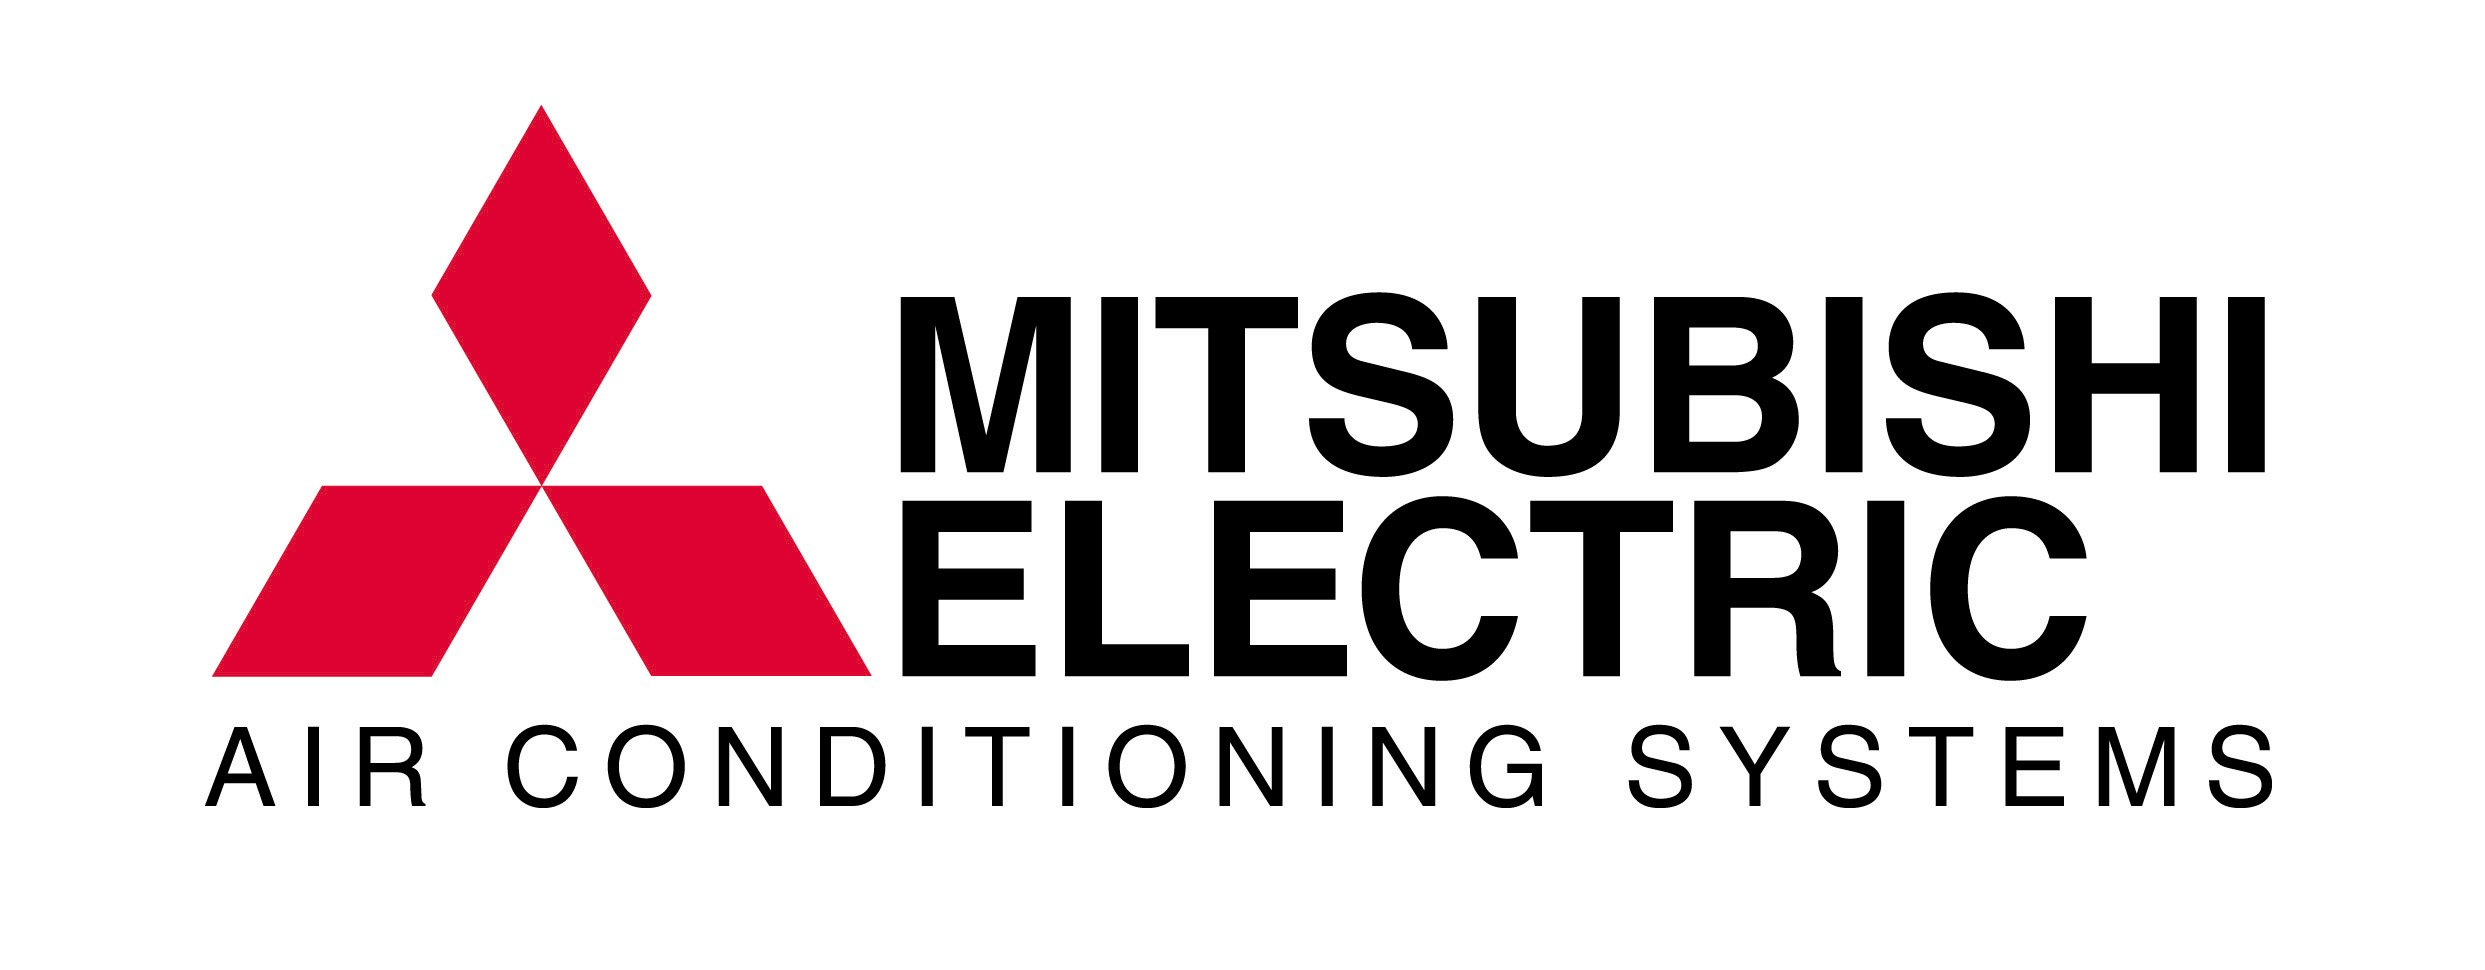 We provide heating system repairs, maintenance & installations for Mitsubishi HVAC products in the Charlotte NC, Harrisburg NC, Huntersville NC, Matthews NC, Concord NC, Cornelius NC and many more areas